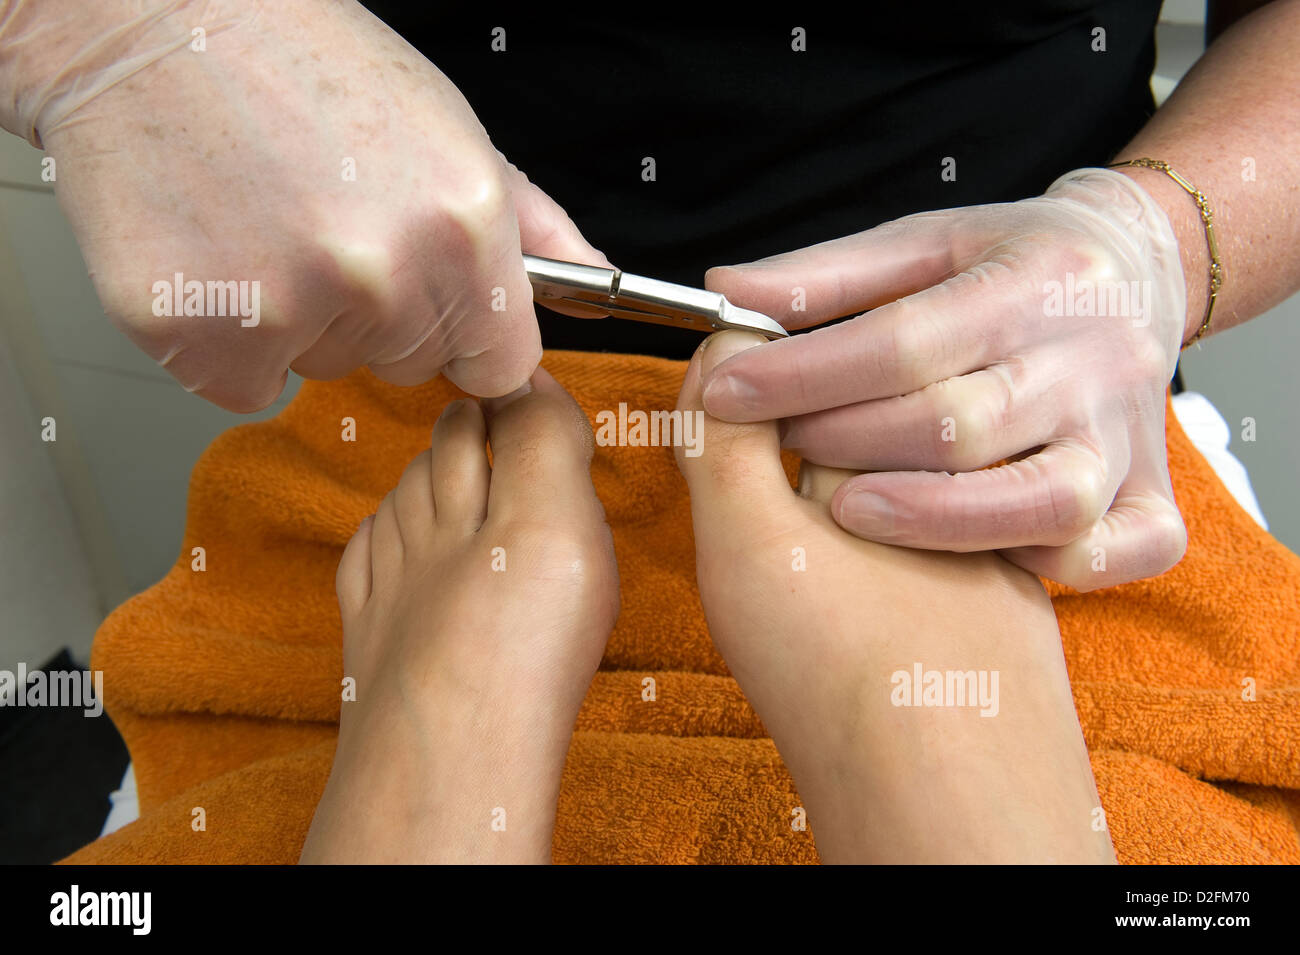 A woman's nails are being cut on her toes in a beauty salon - Stock Image